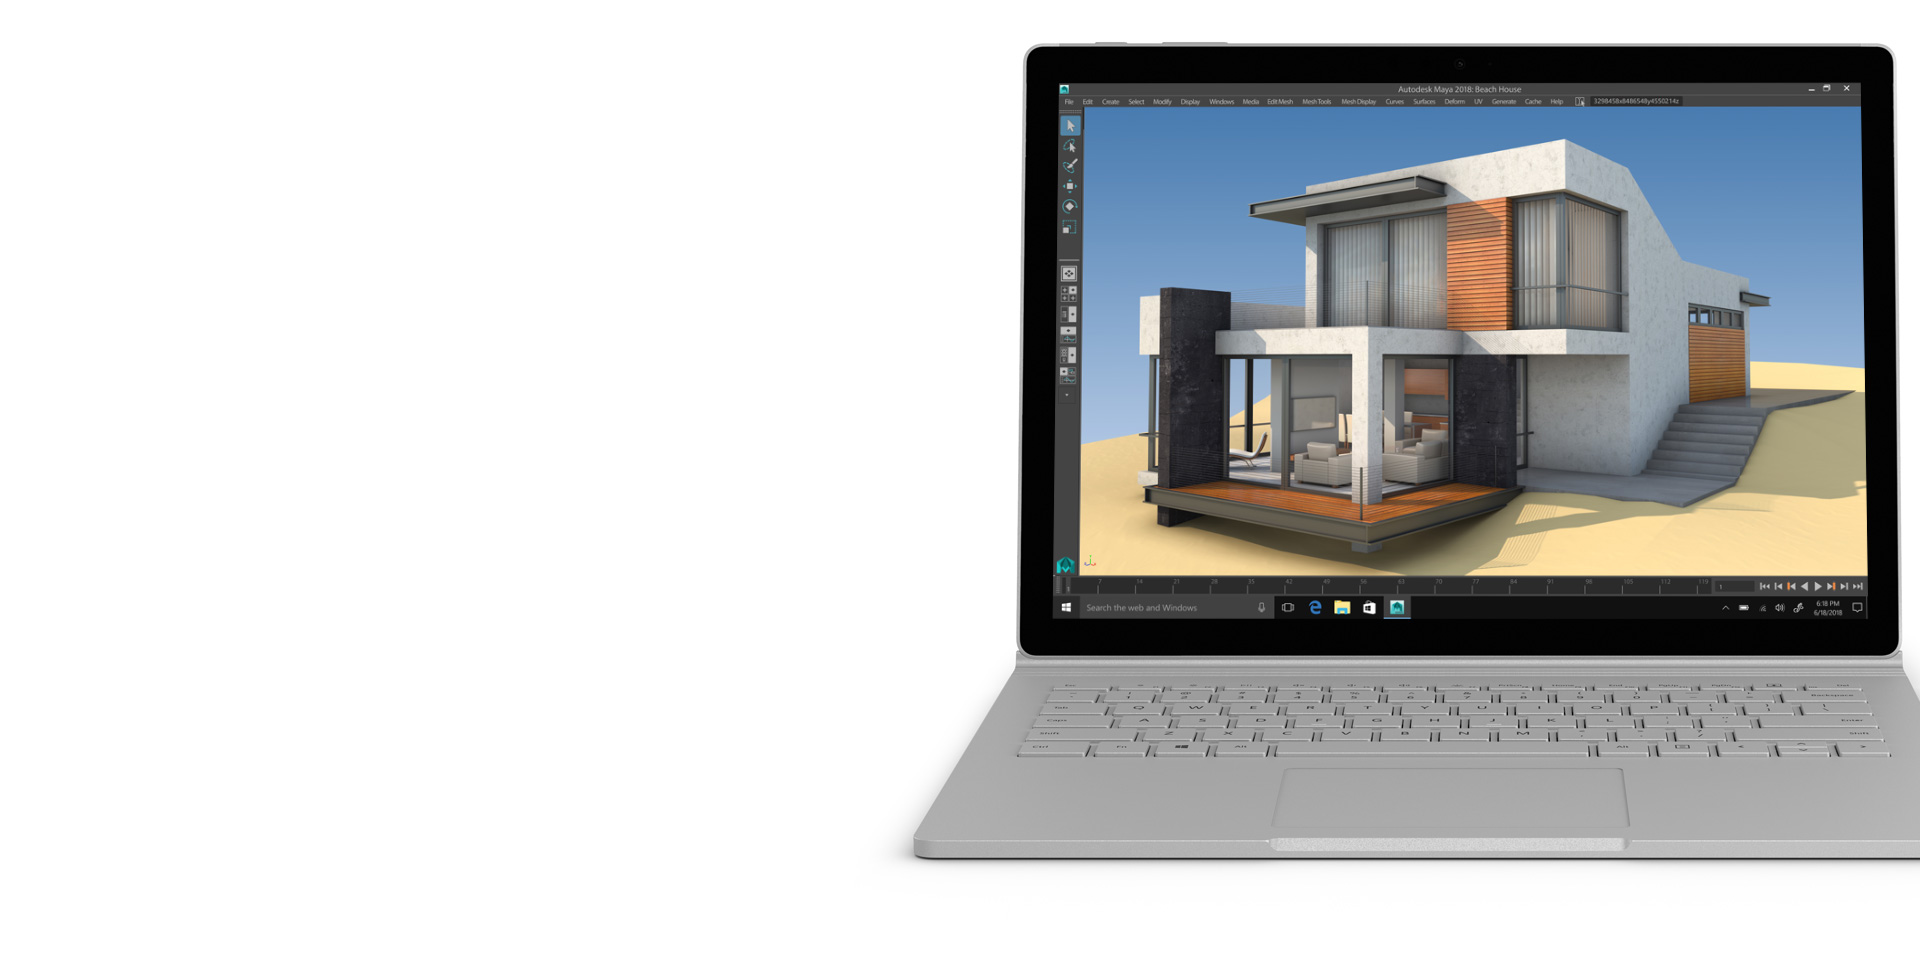 عرض Autodesk Maya على جهاز Surface Book 2